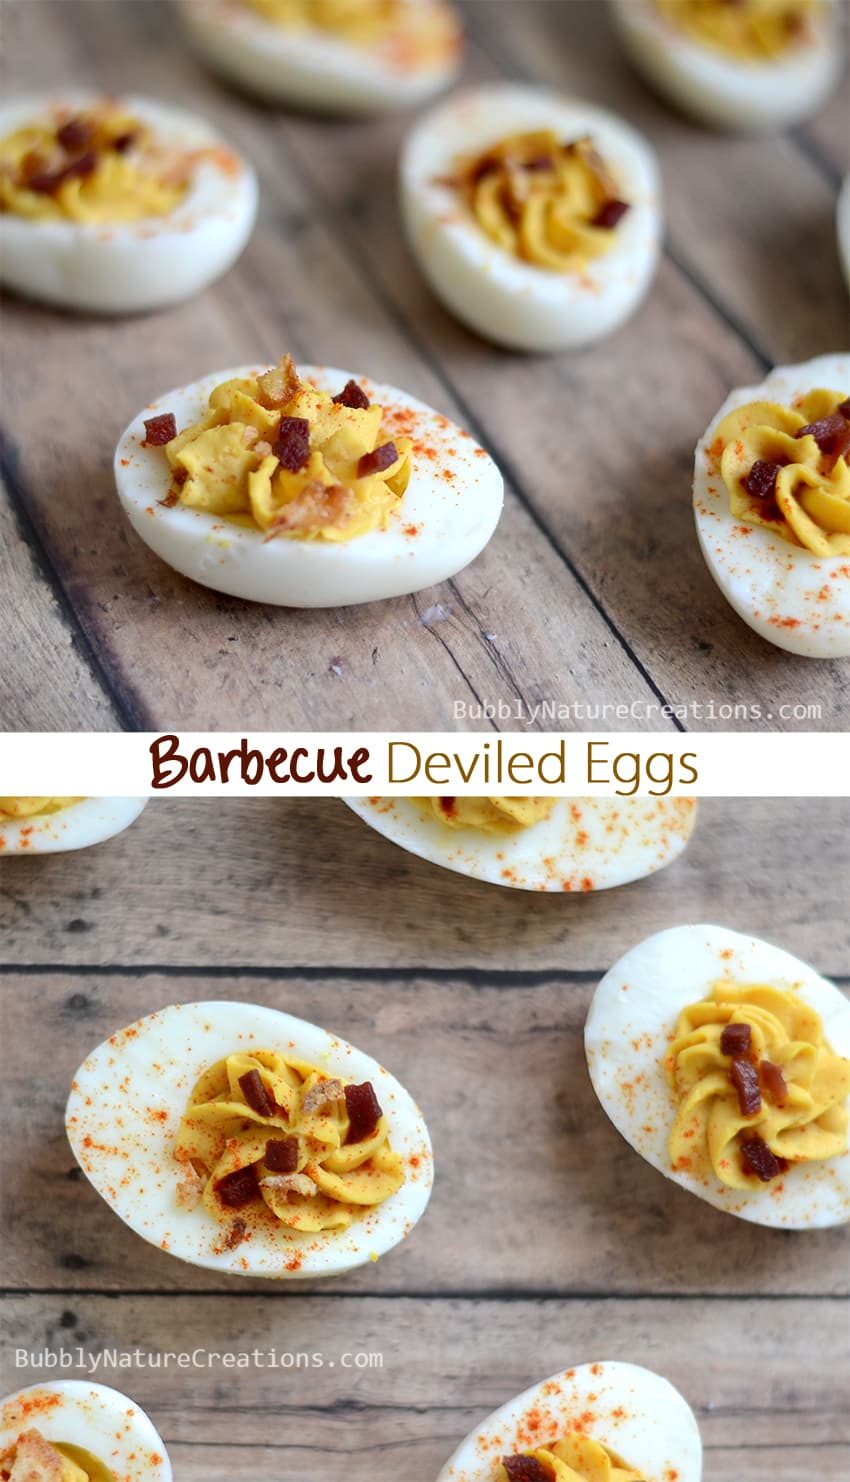 Barbeque Deviled Eggs!  Slightly sweet and tangy BBQ sauce is a tasty addition to deviled eggs!